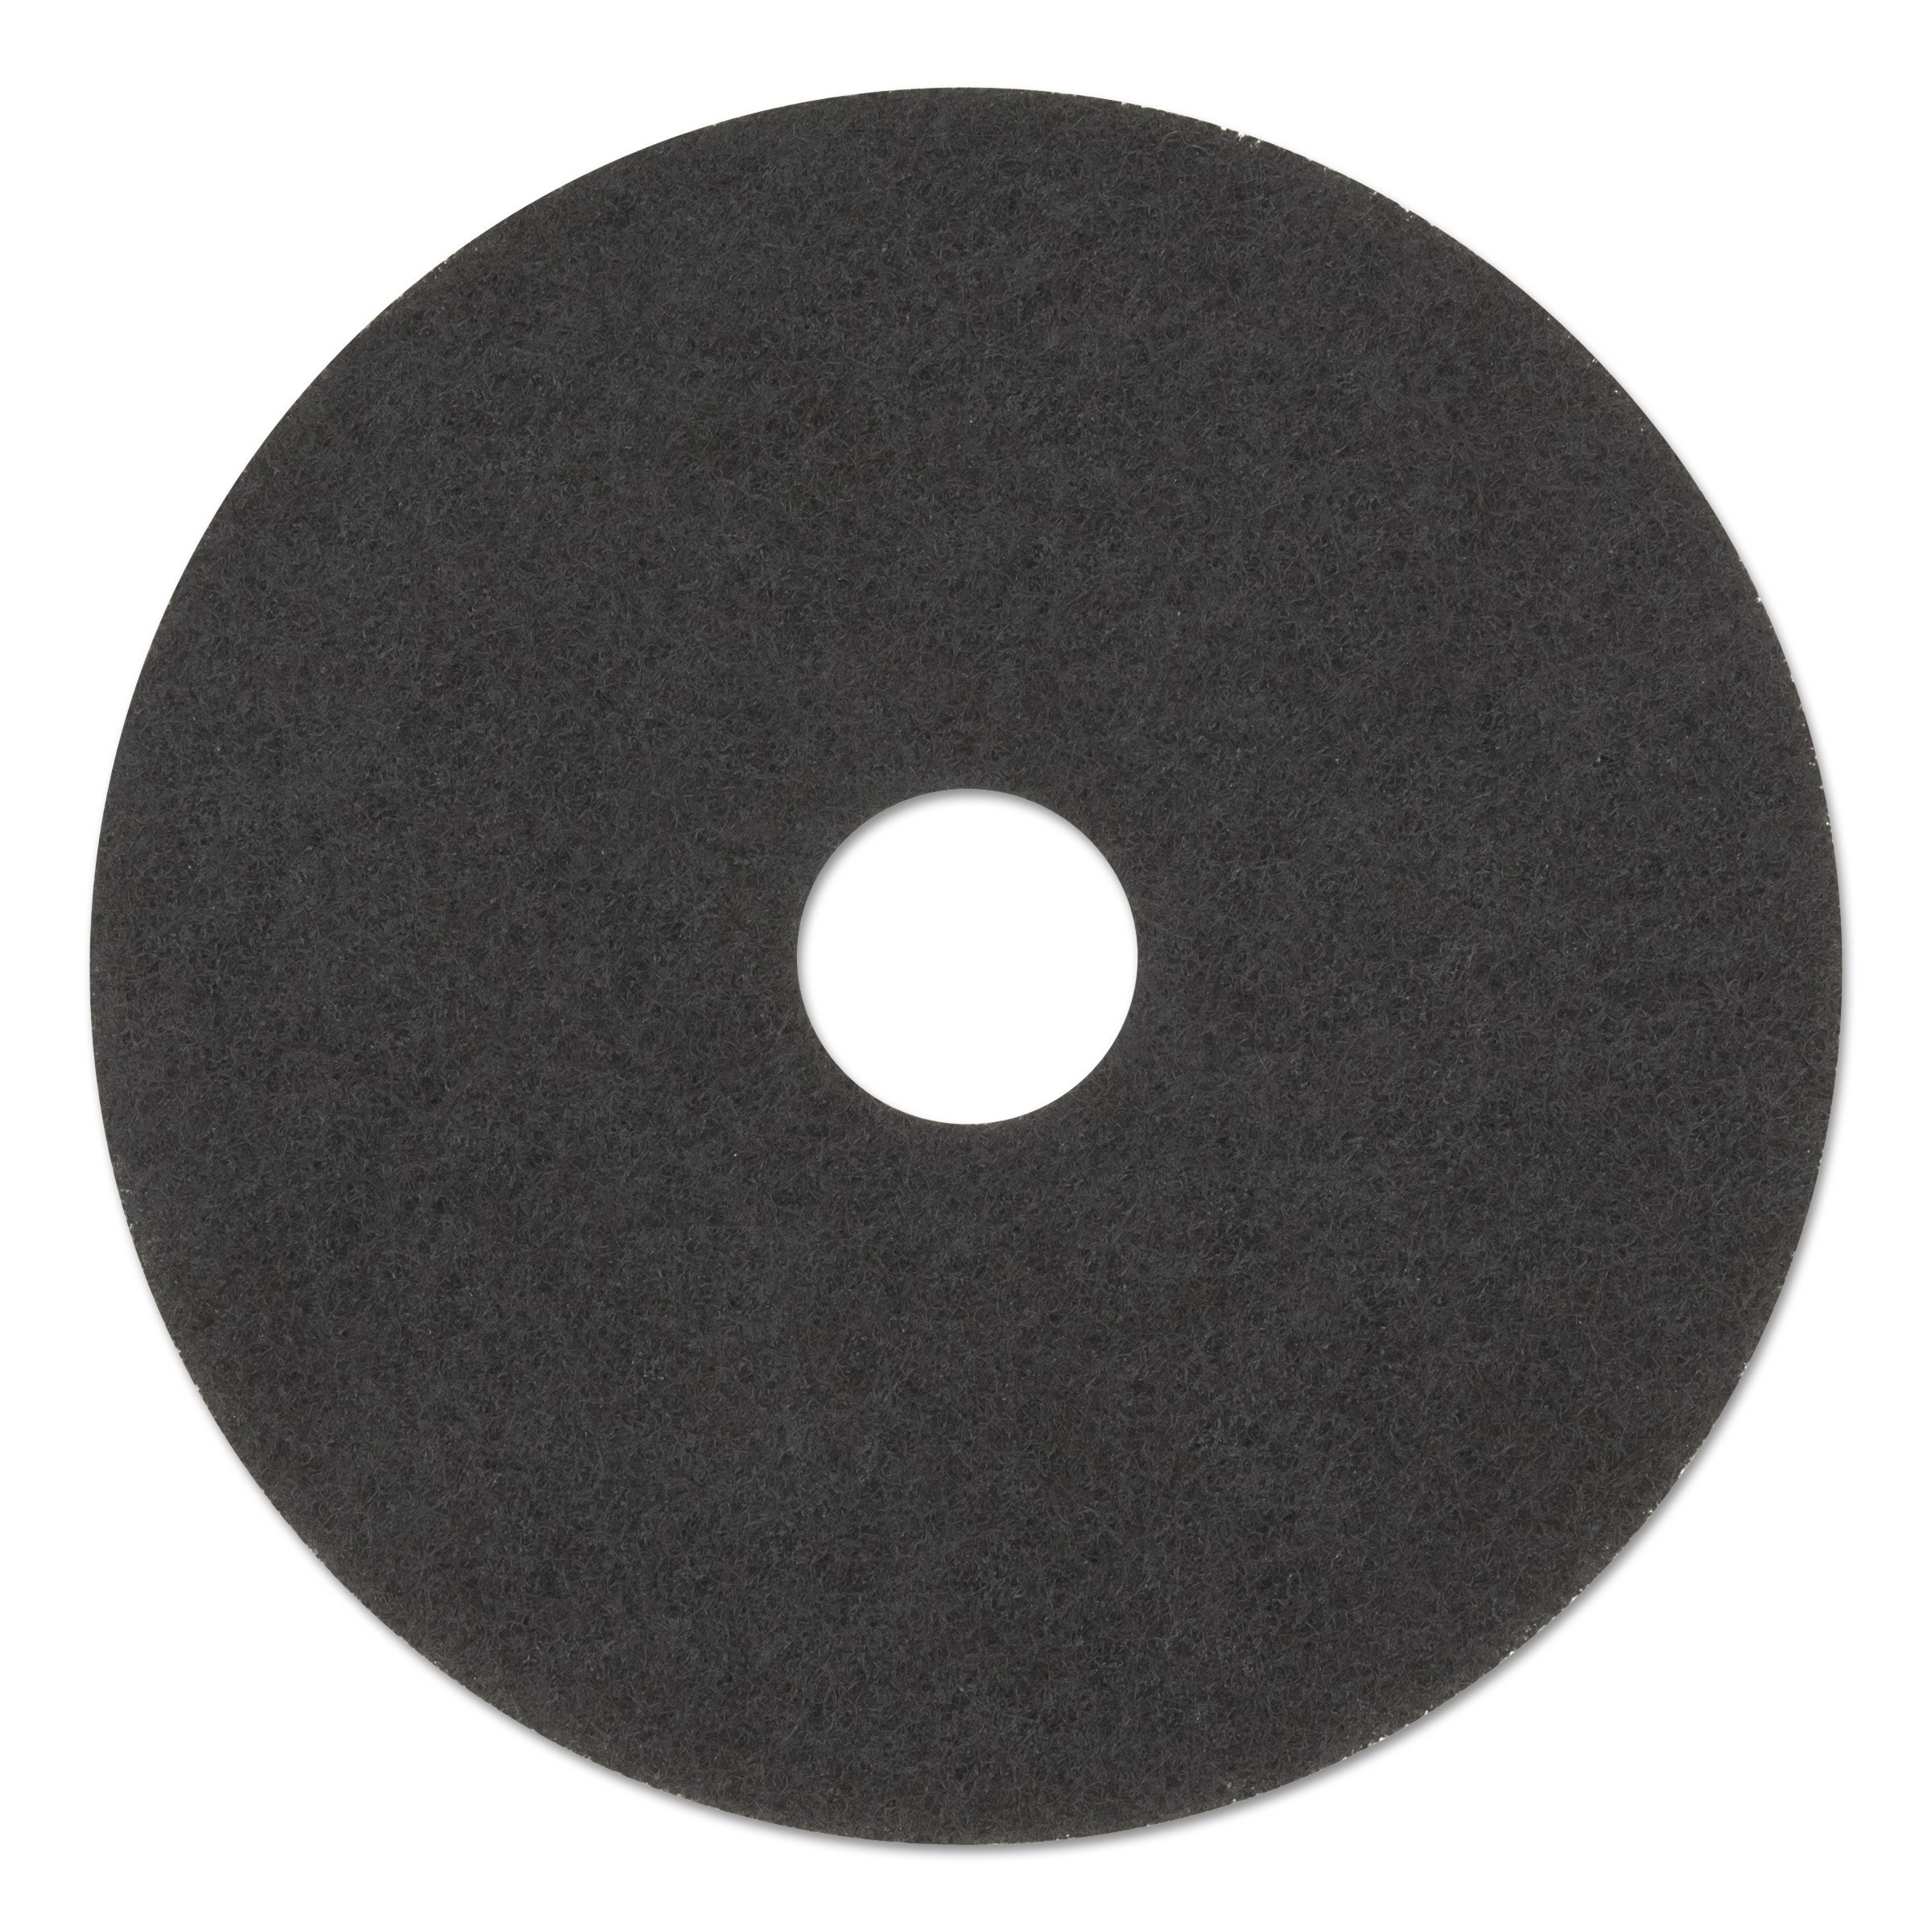 Premiere Pads Standard 20-Inch Diameter High Performance Stripping Floor Pads, Black (Case of 5)